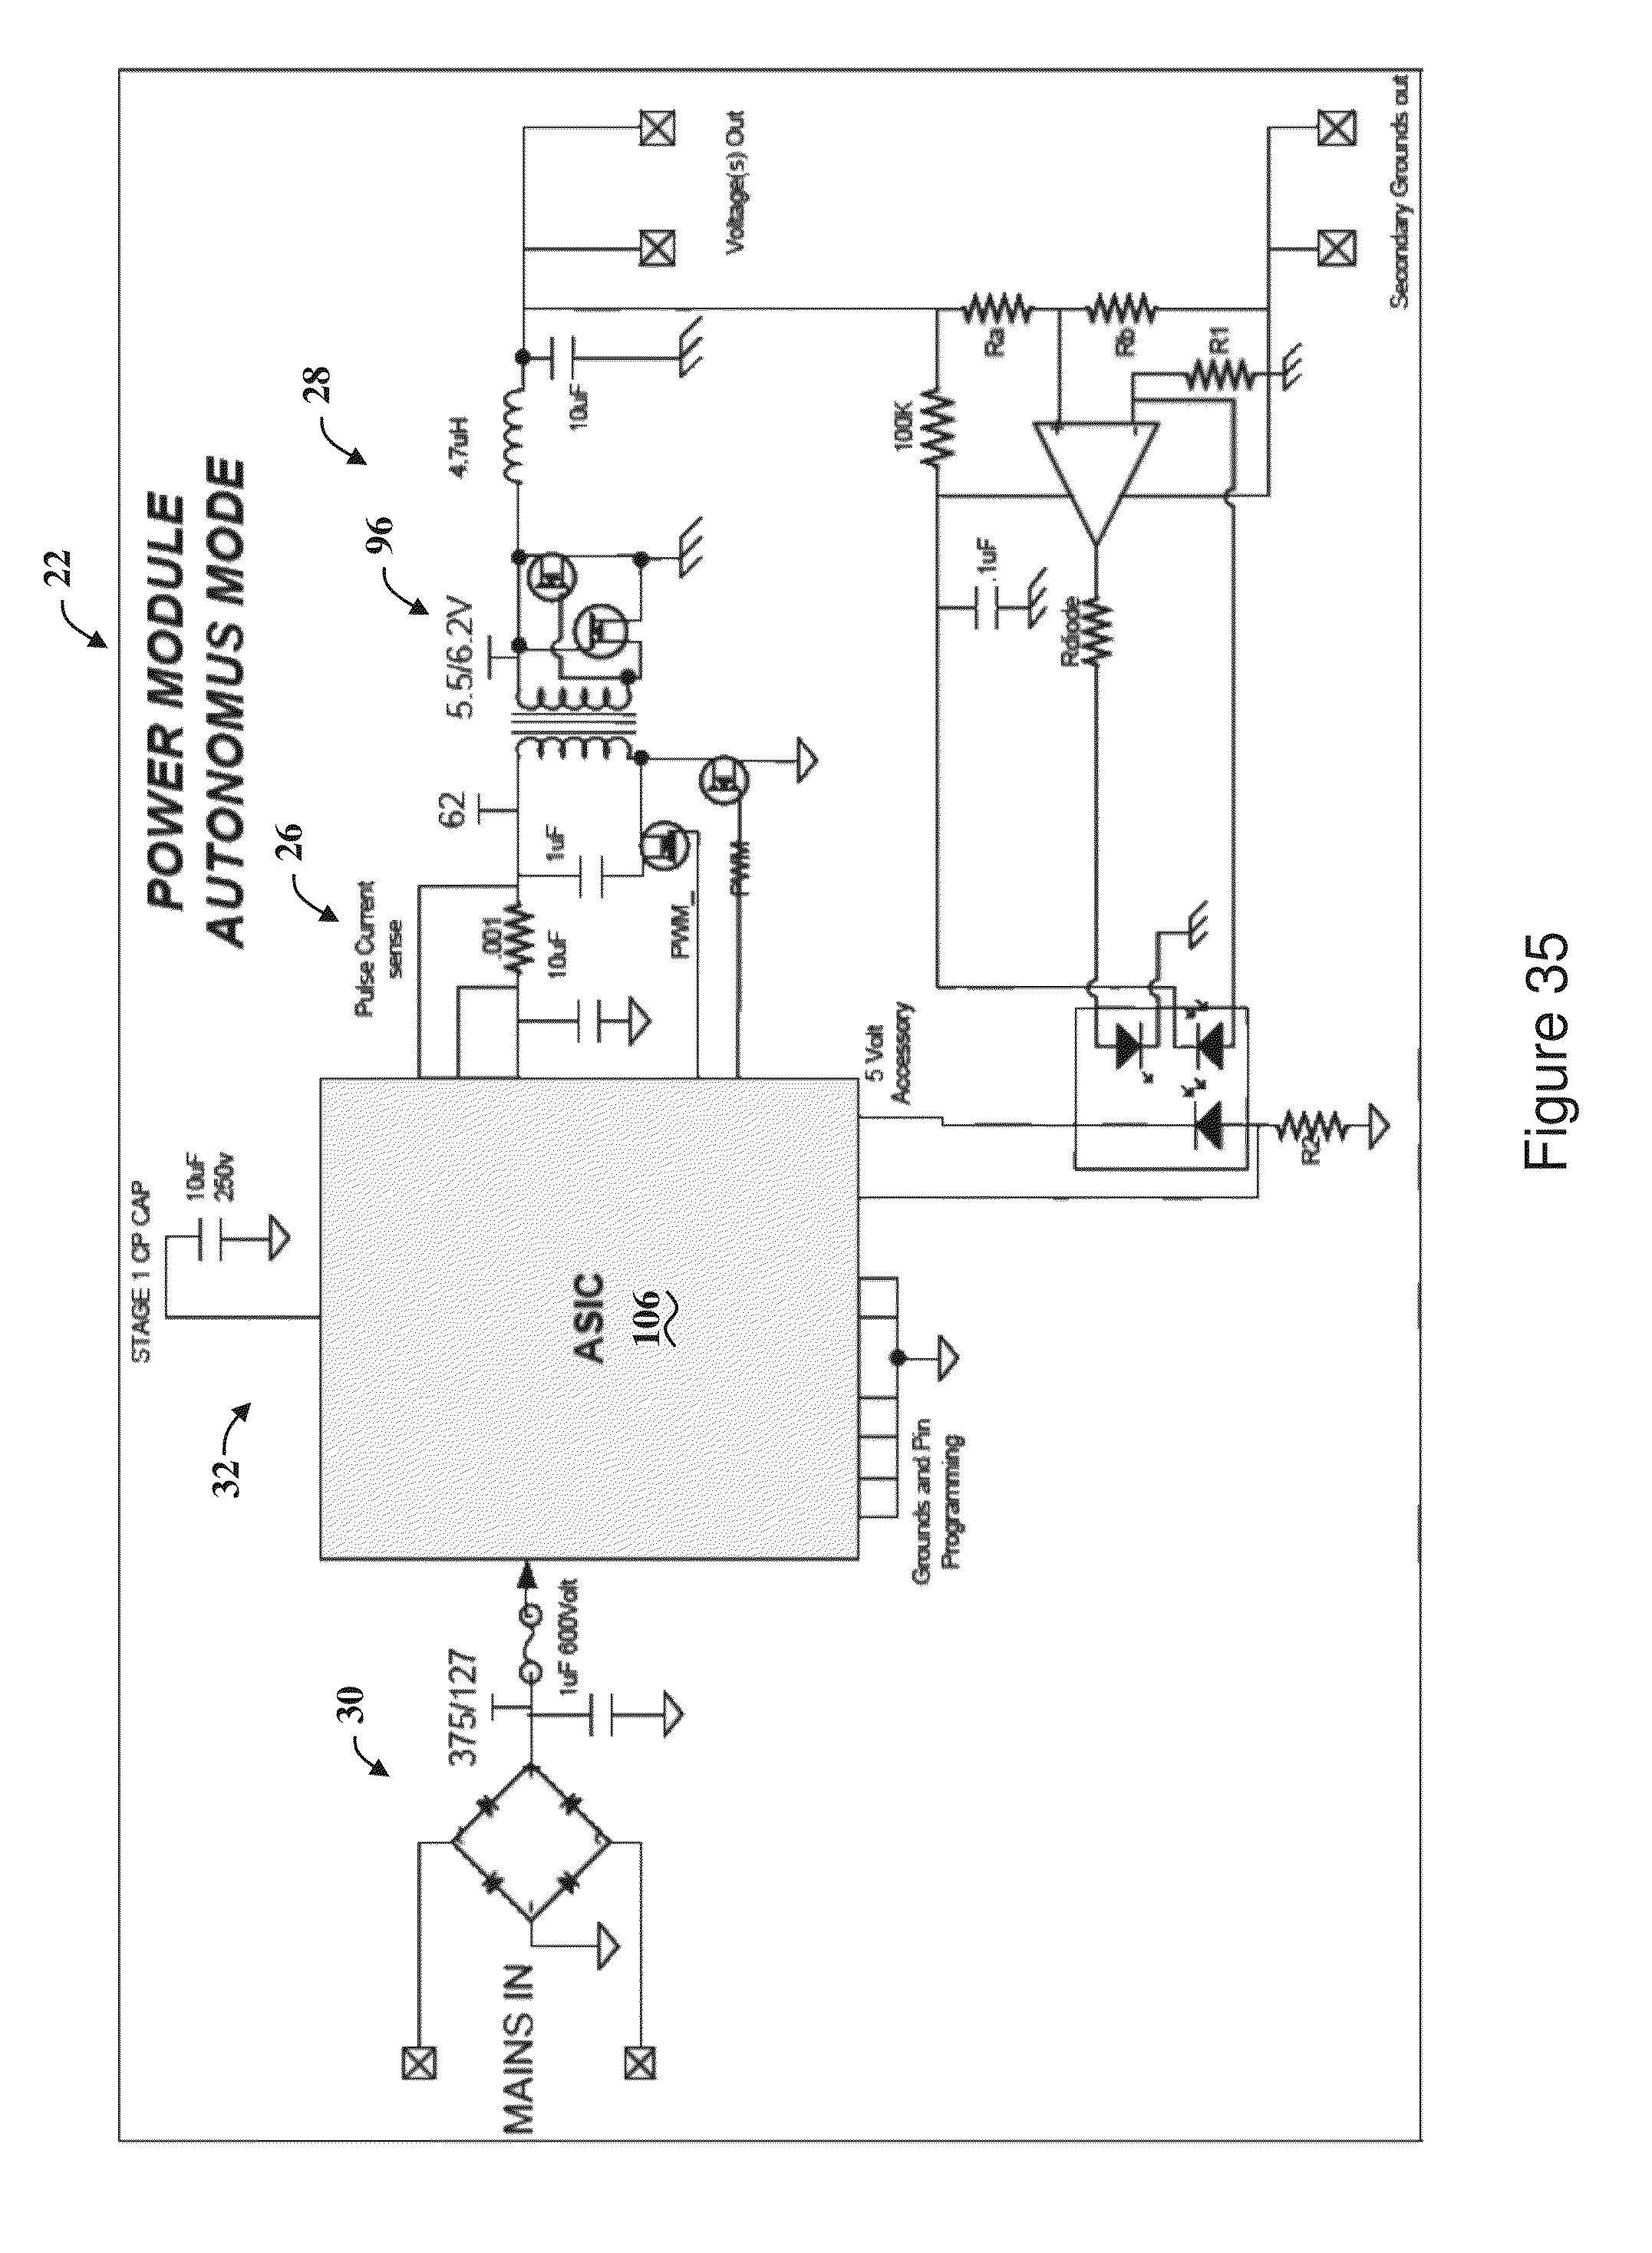 Disconnect Box Wiring Moreover 220 To Breaker Panel Box Wiring Diagram